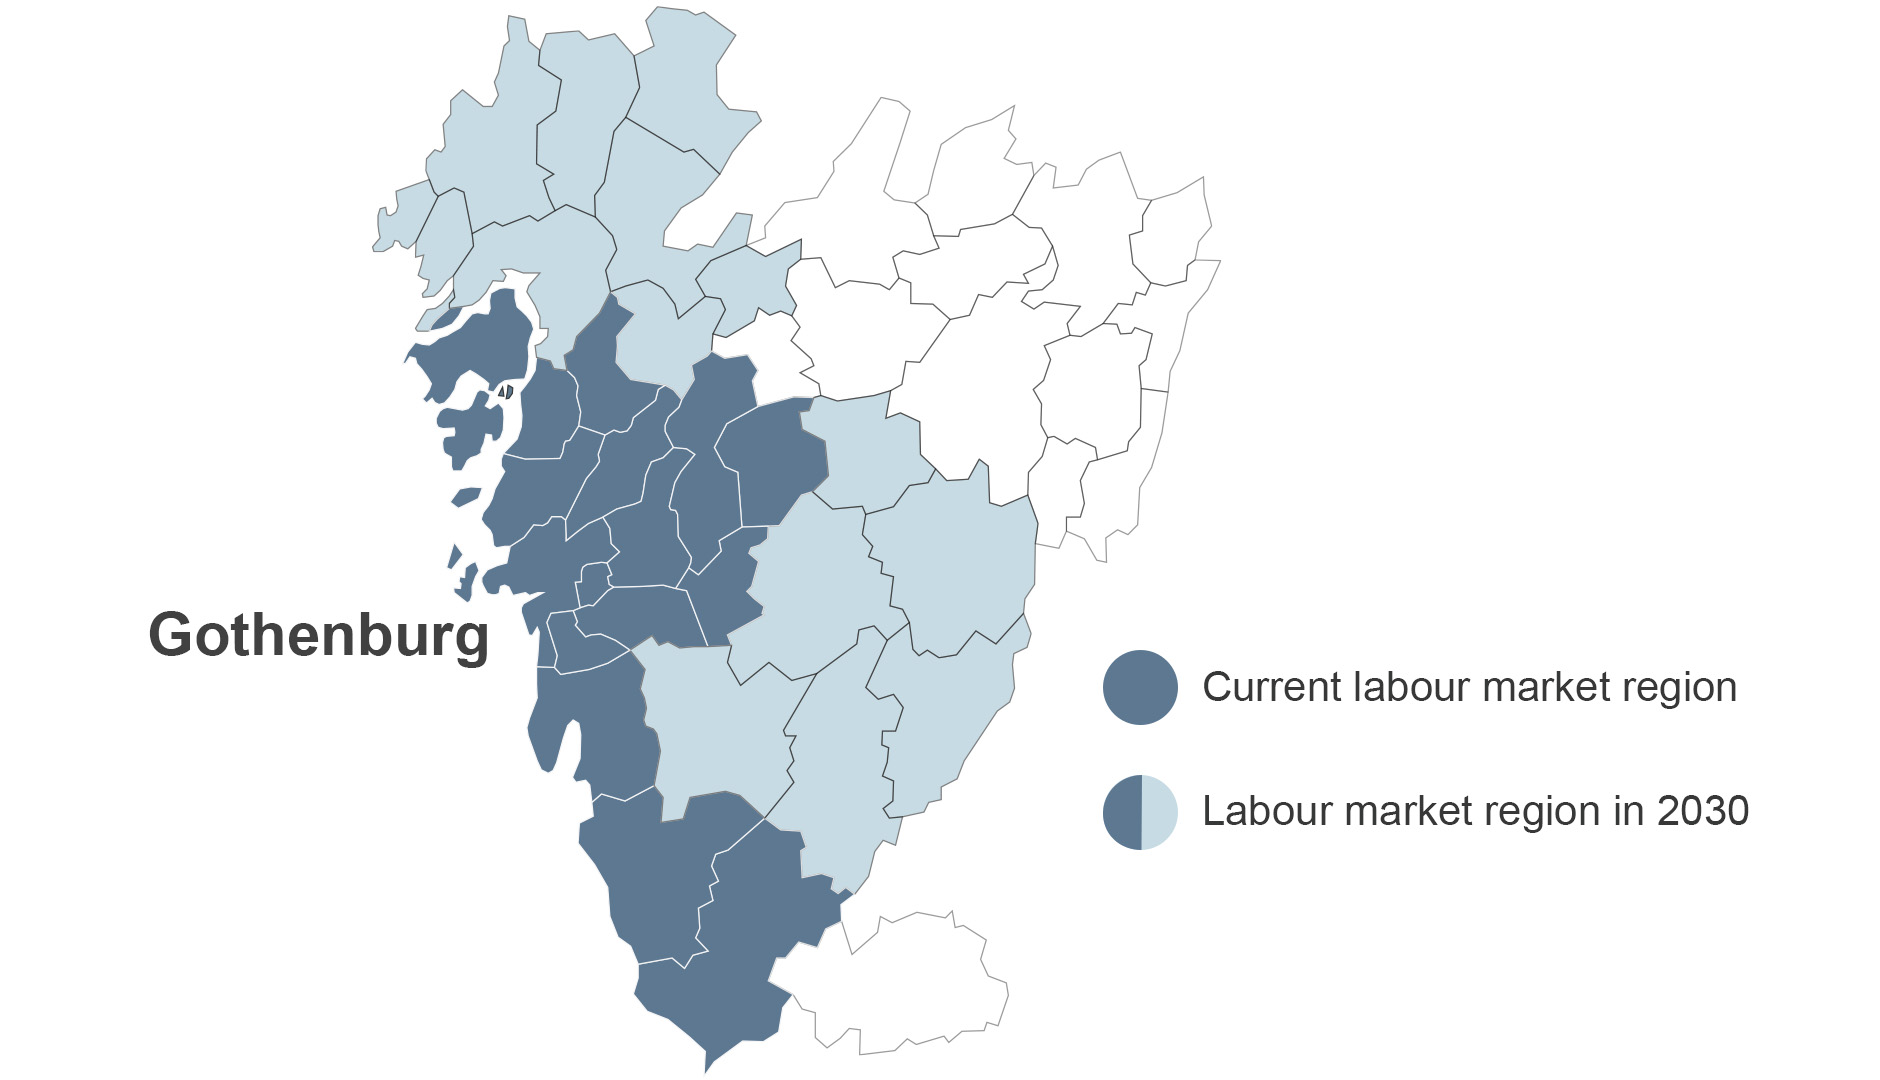 Labour market region - Gothenburg